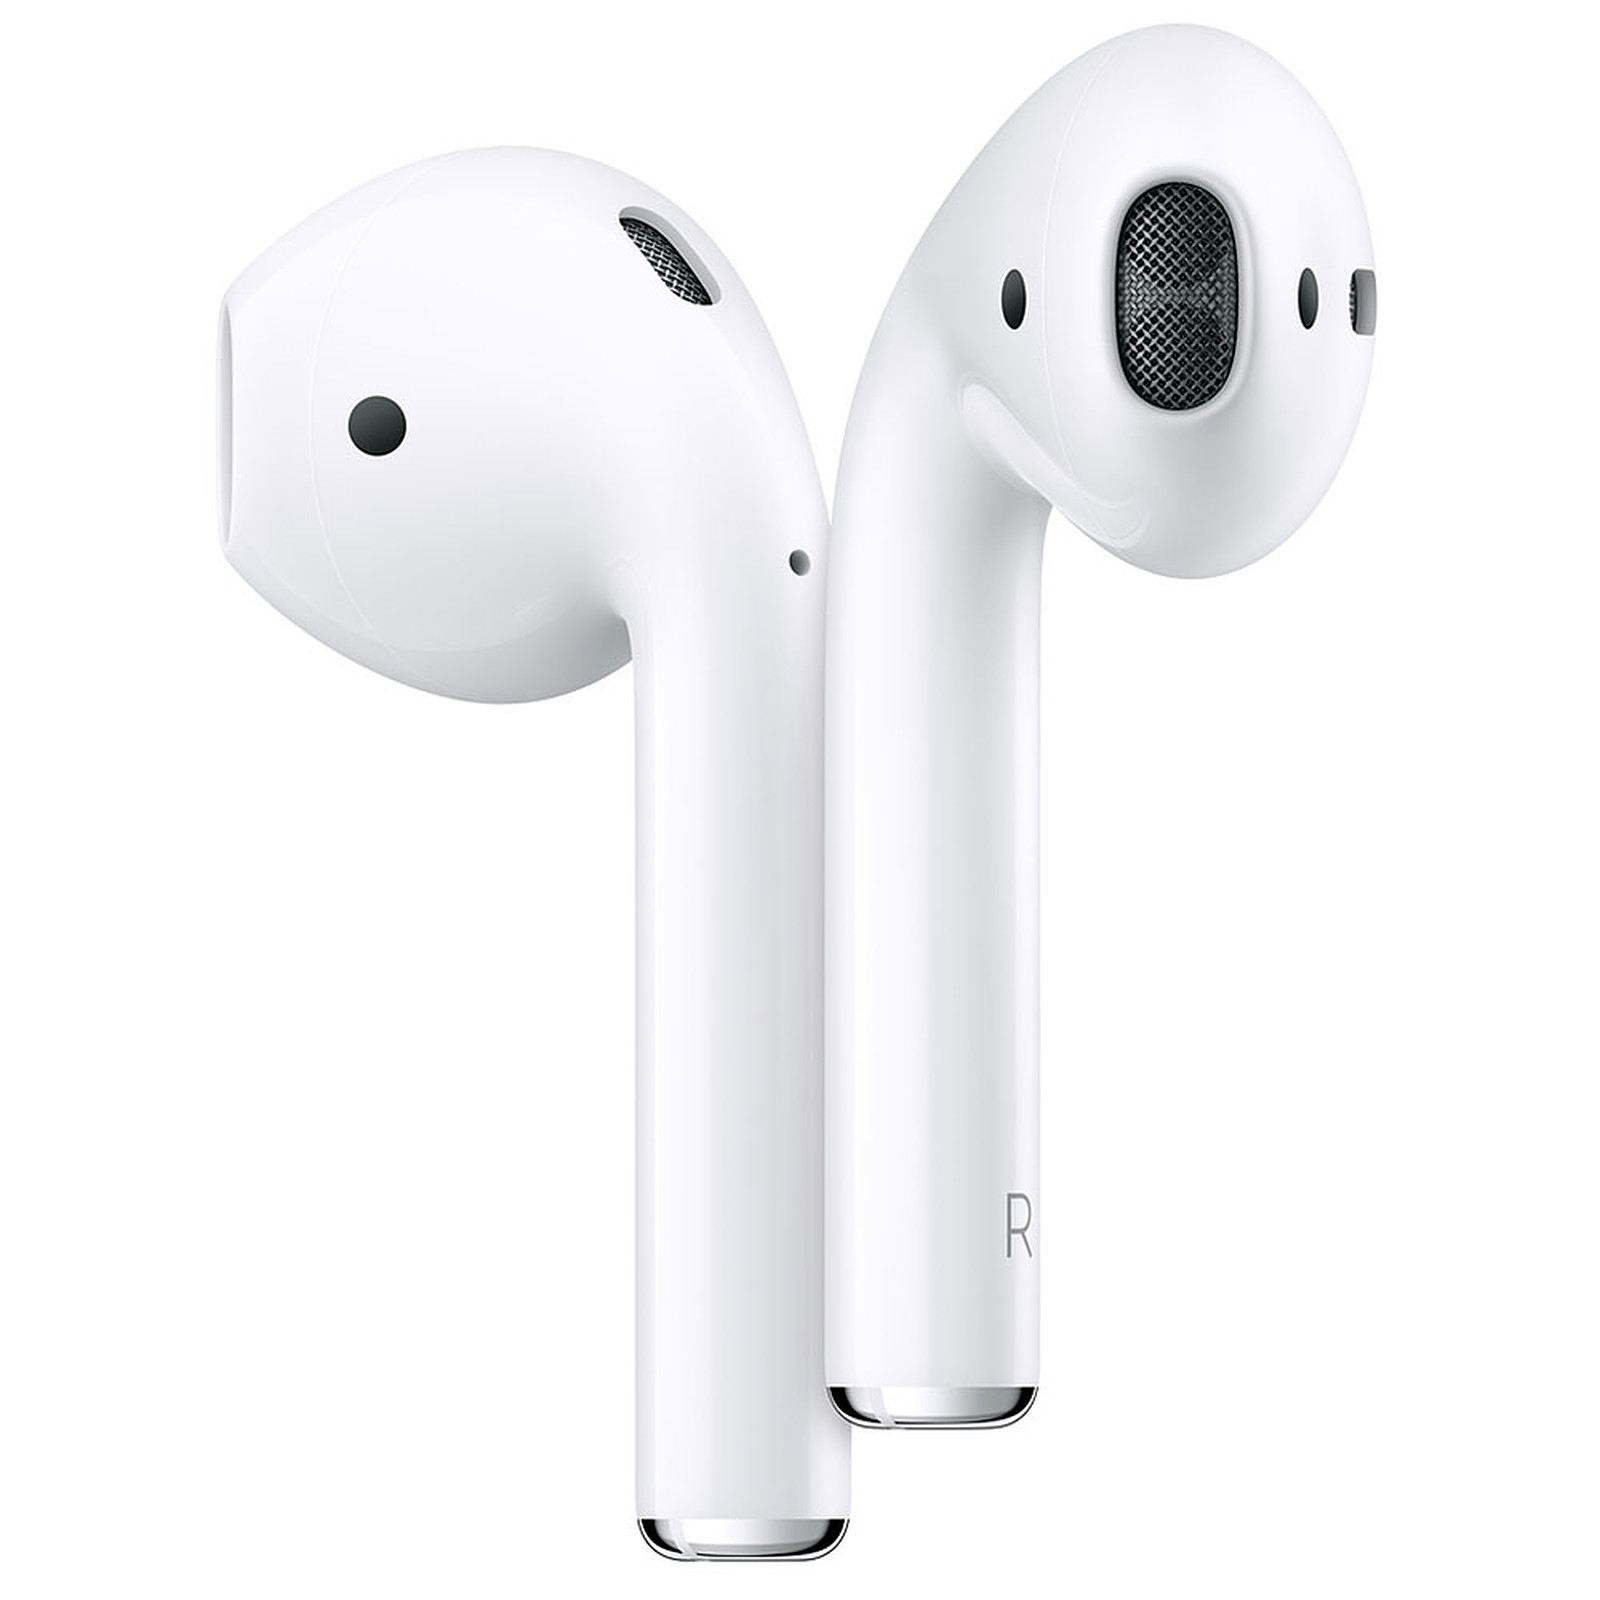 apple-airpods-2-sac-co-day-tai-nghe-bluetooth-apple